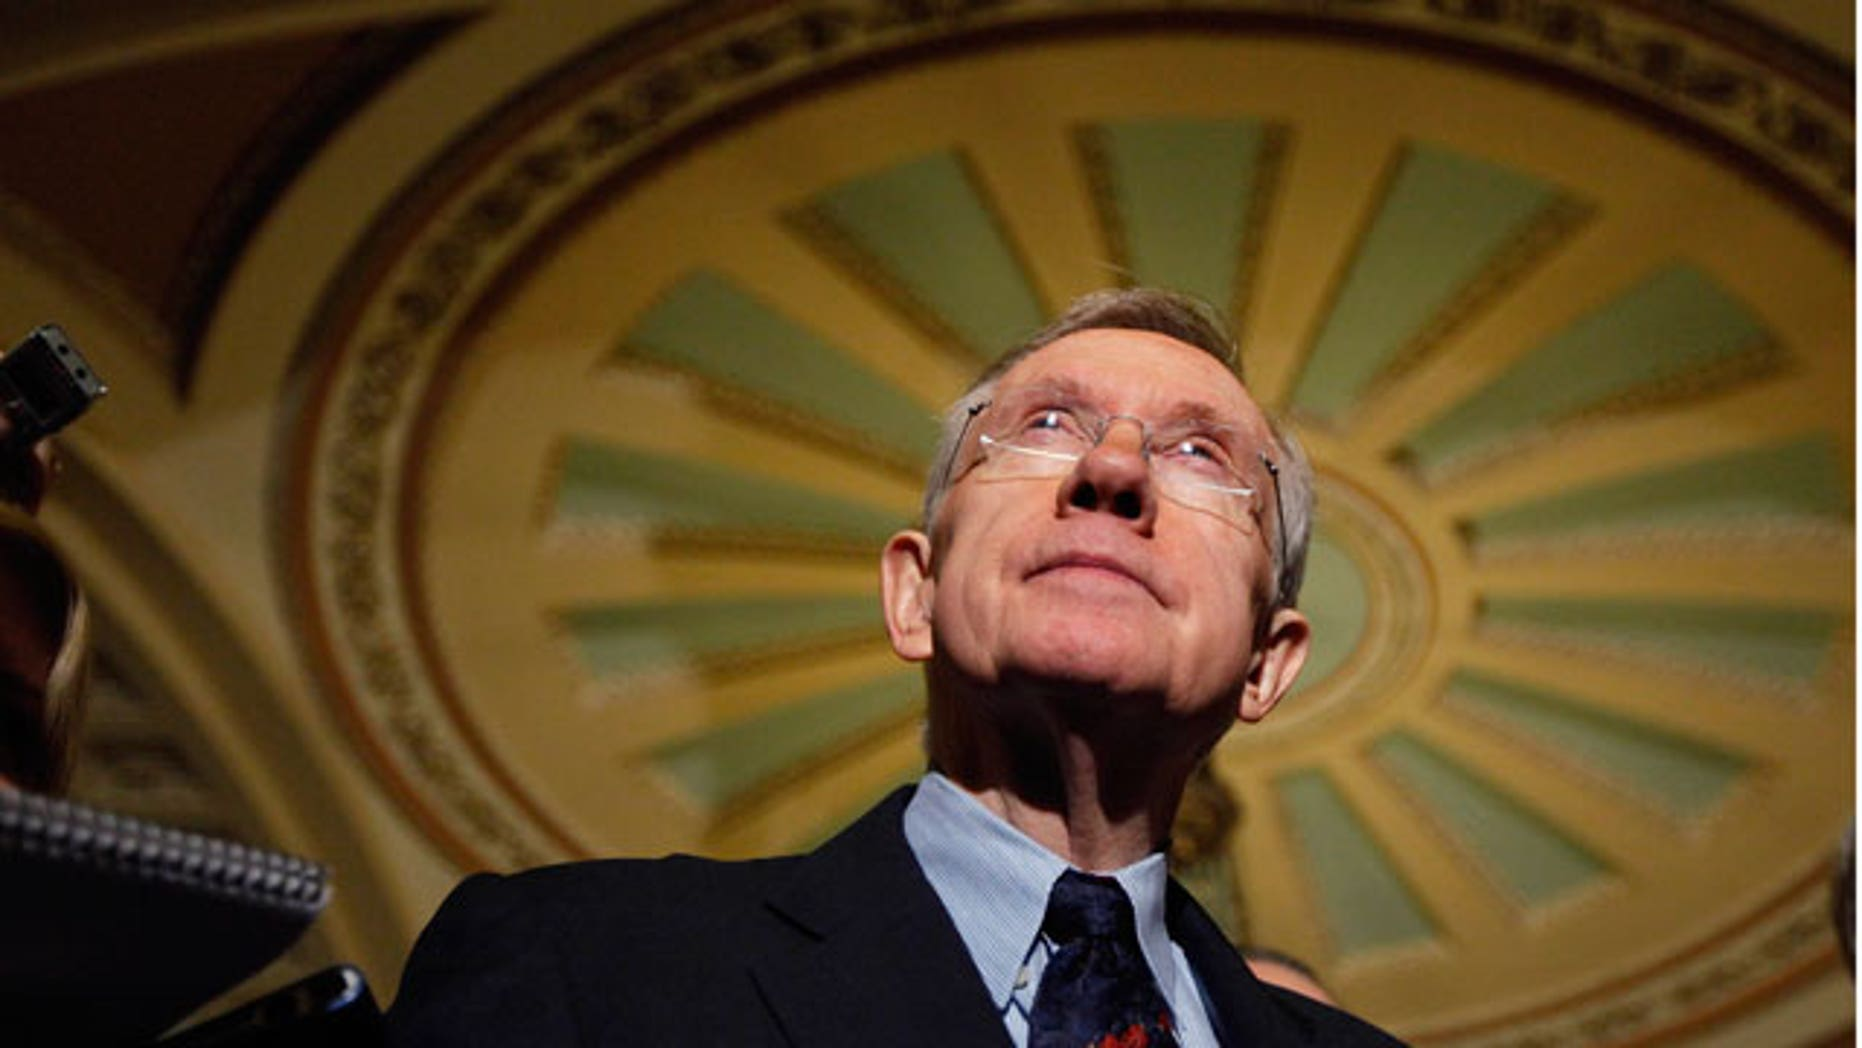 Dec. 24: Senate Majority Leader Harry Reid listens to questions following the passage of the Senate health care bill.